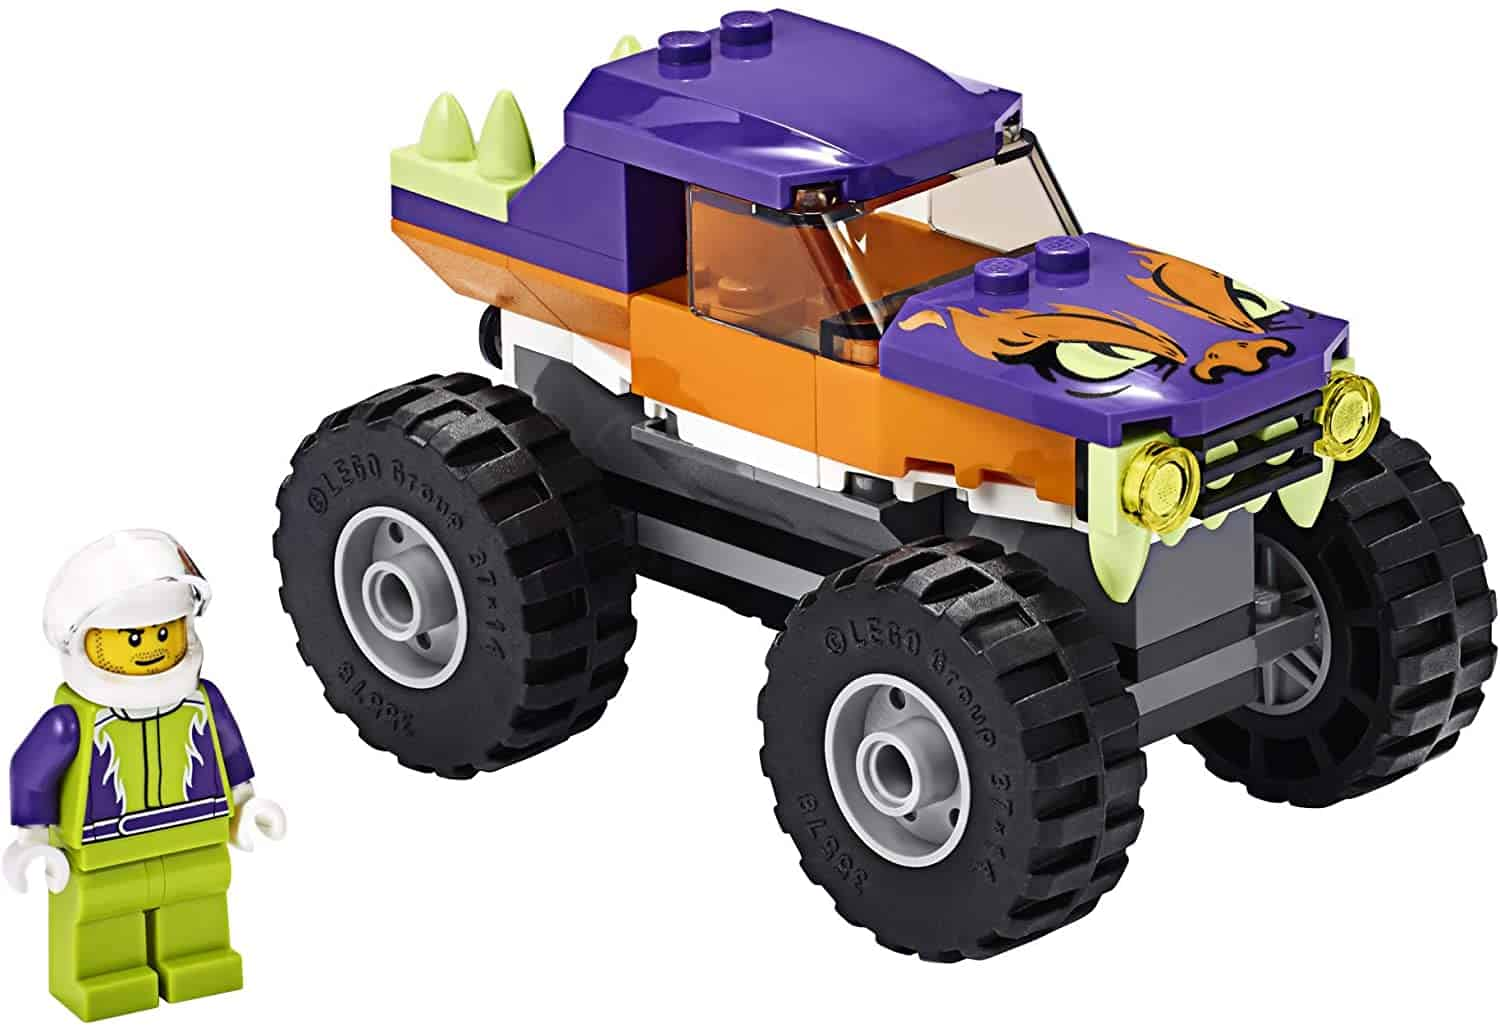 LEGO City Monster Truck car lego set